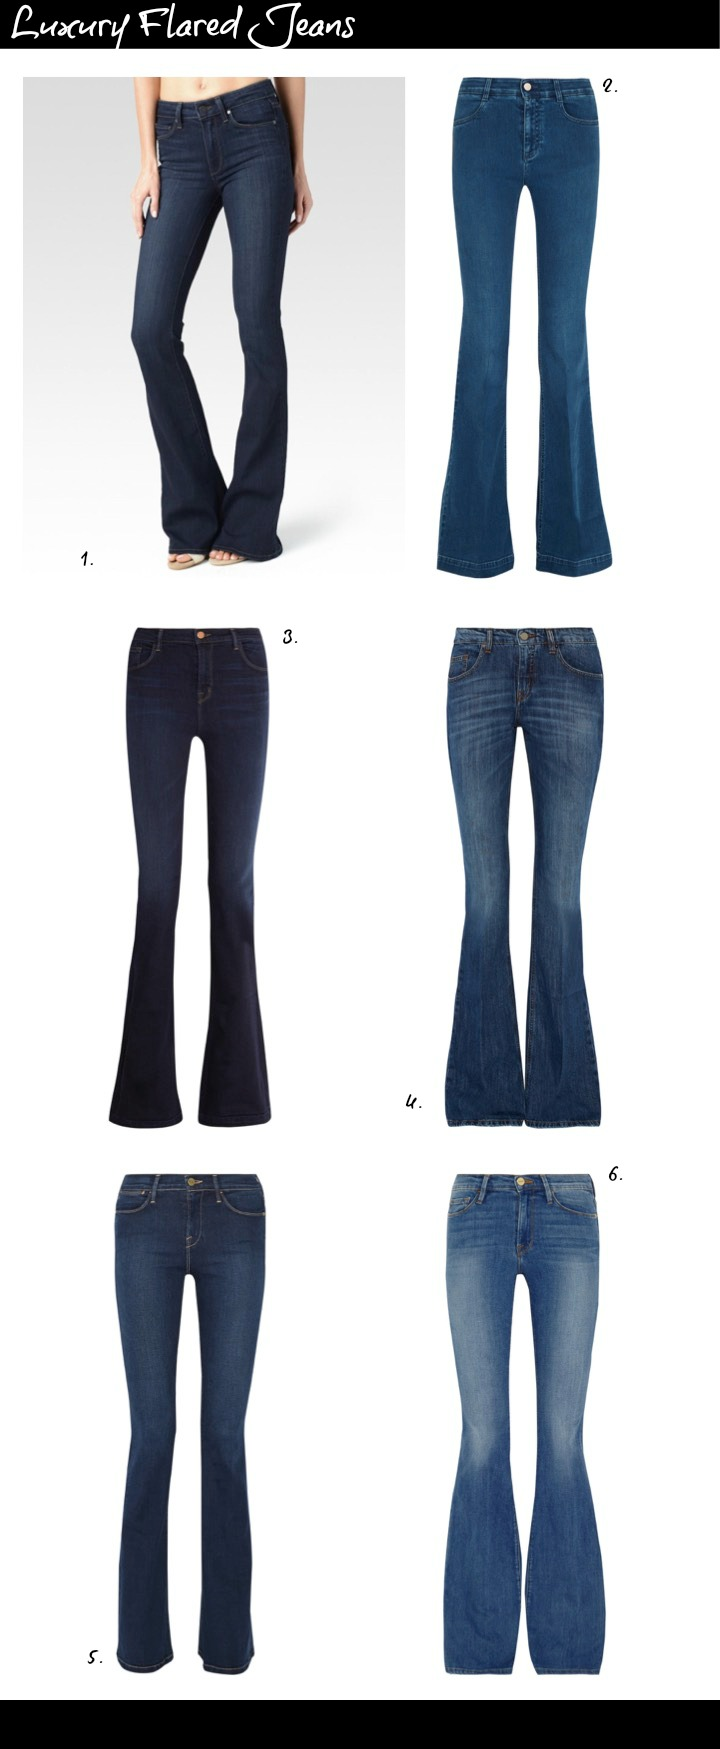 Best Flared Jeans Luxury Brands